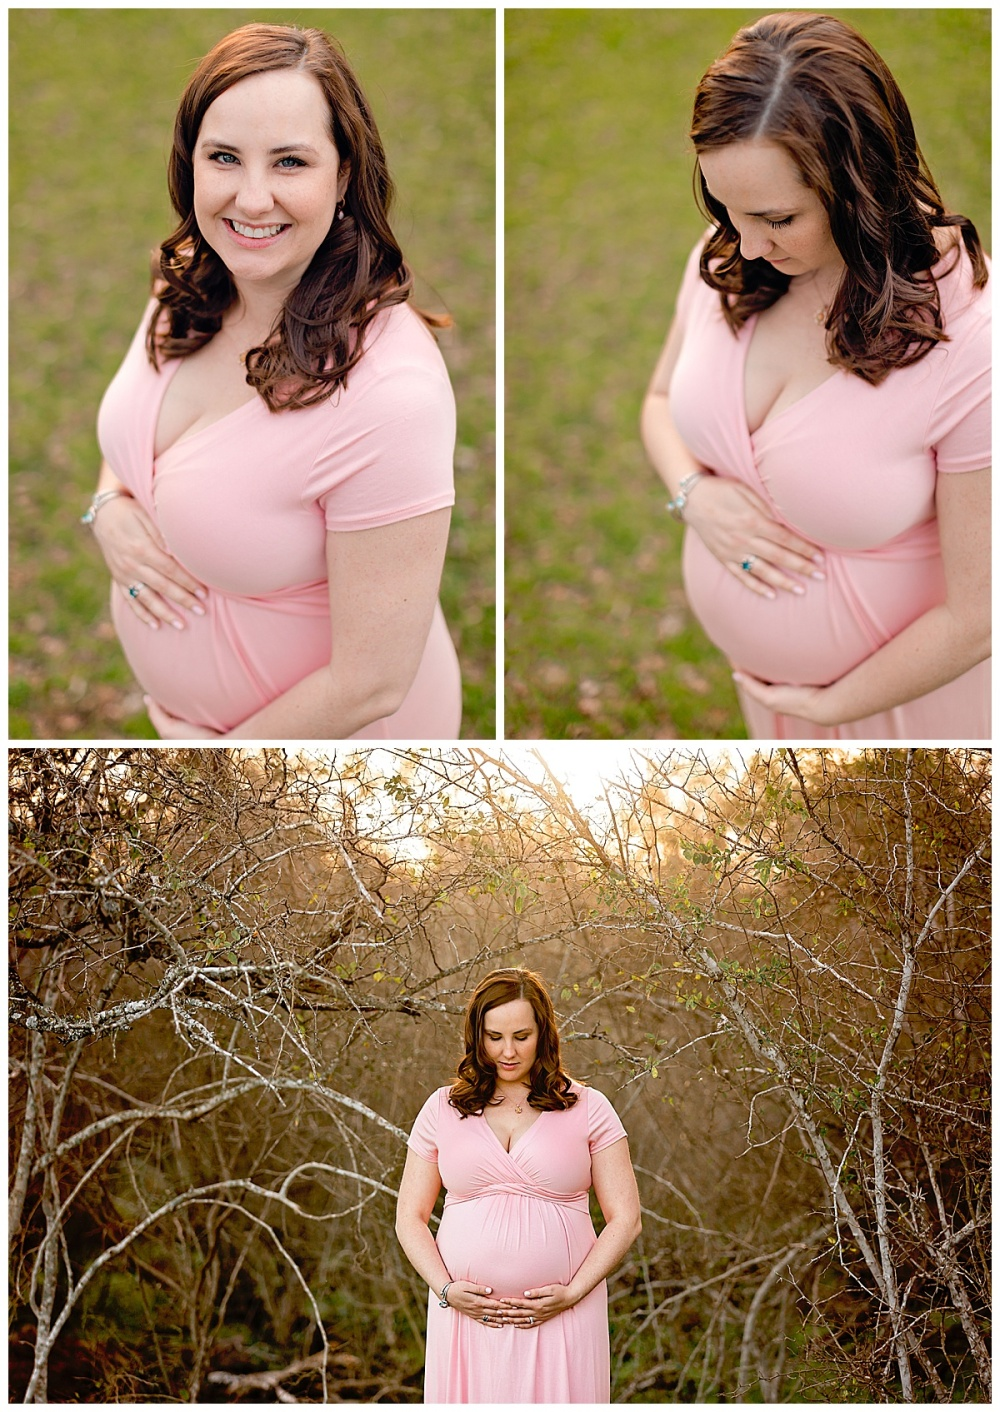 Maternity-Photographer-Texas-Carly-Barton-Photography-LaVernia-Photos_0009.jpg